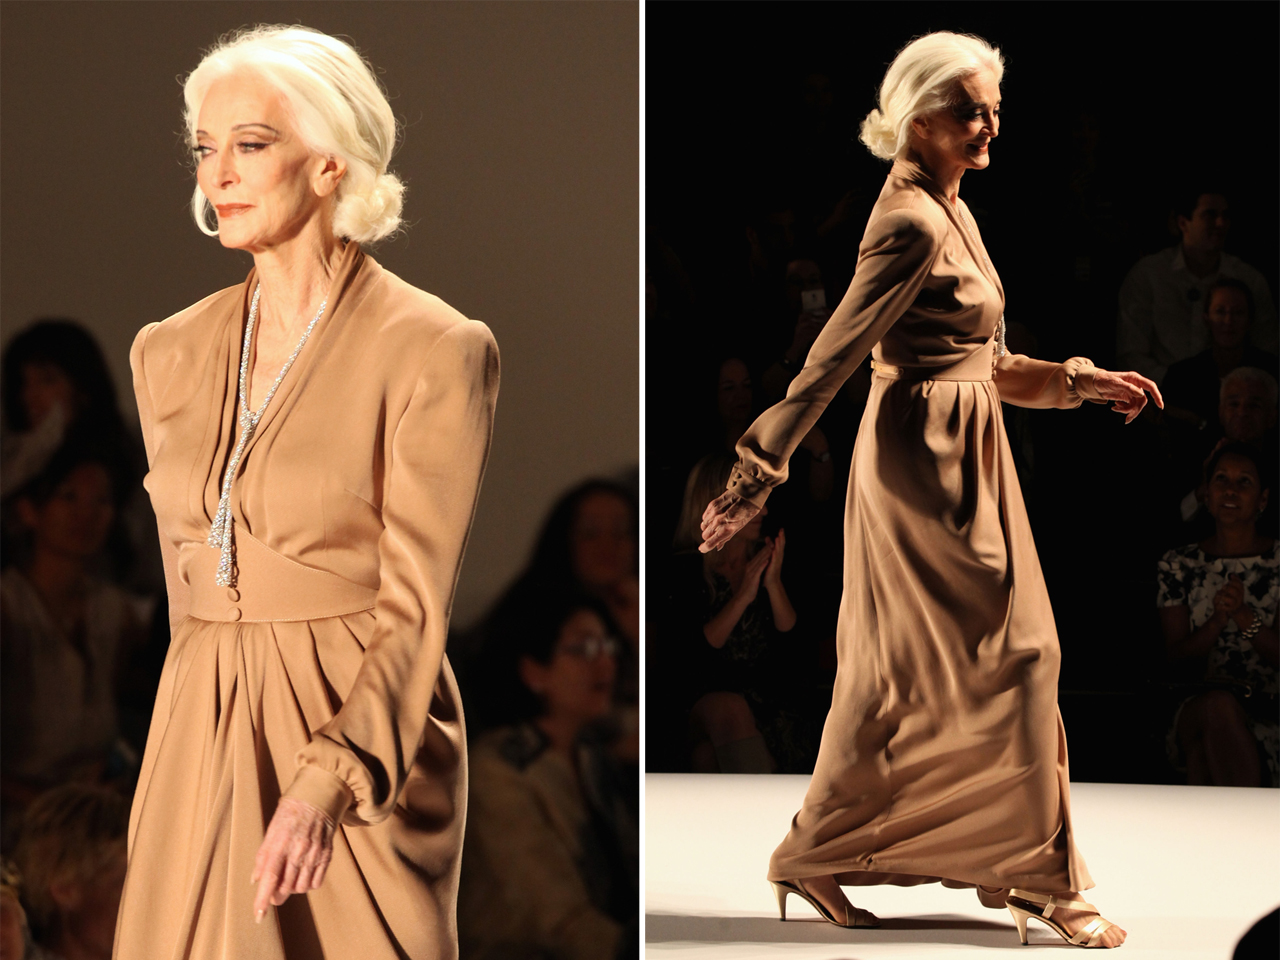 81 Year Old Fashion Week Model 39 Life Exists Beyond 50